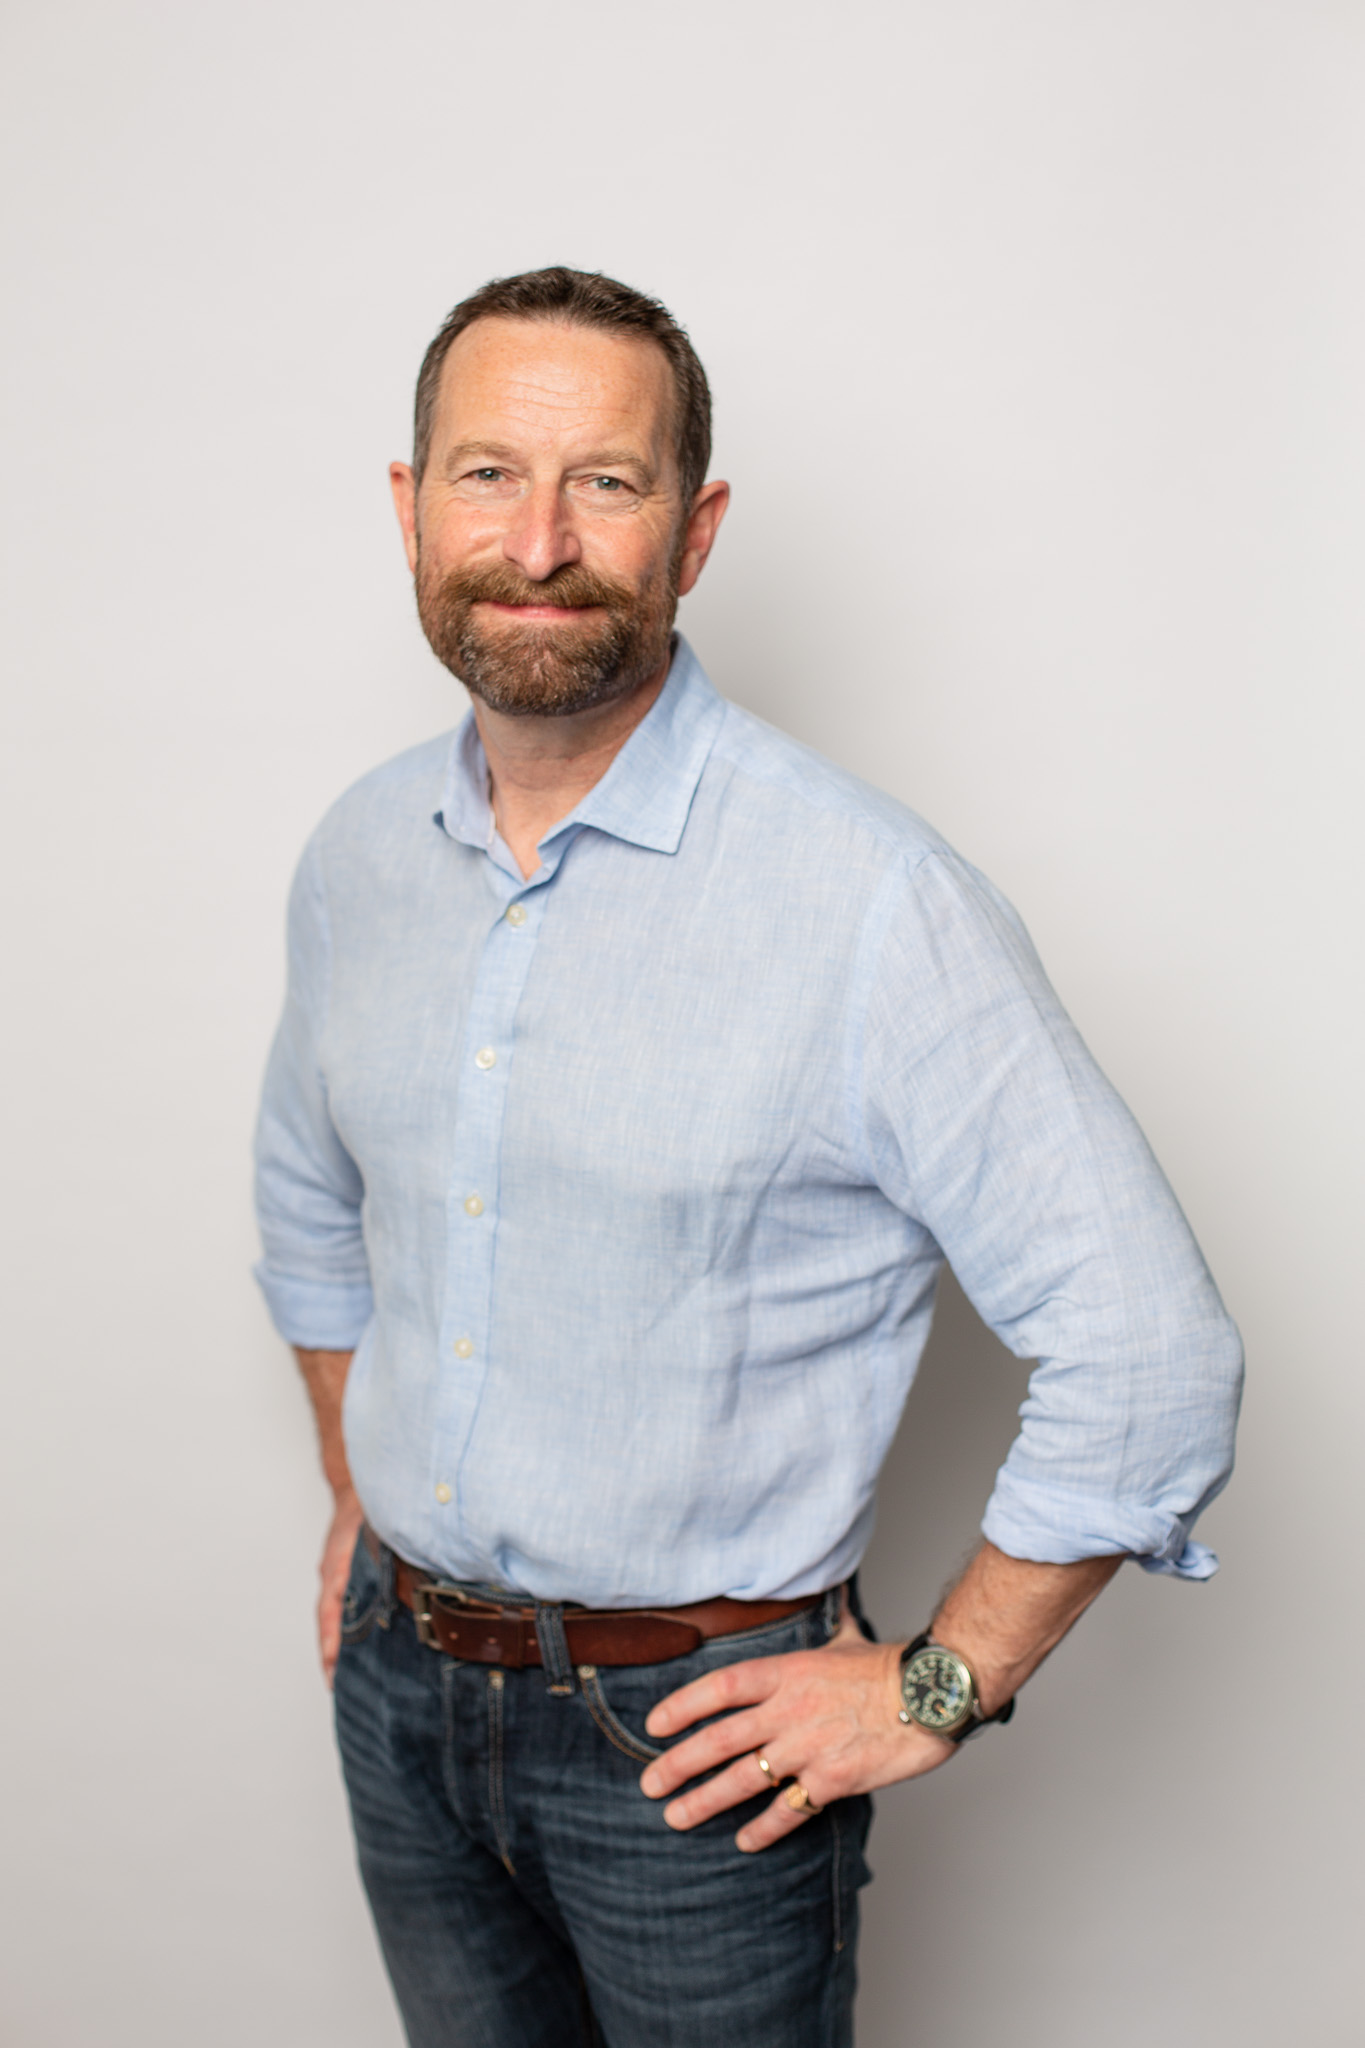 Duncan Wardle on a white backdrop in a blue shirt